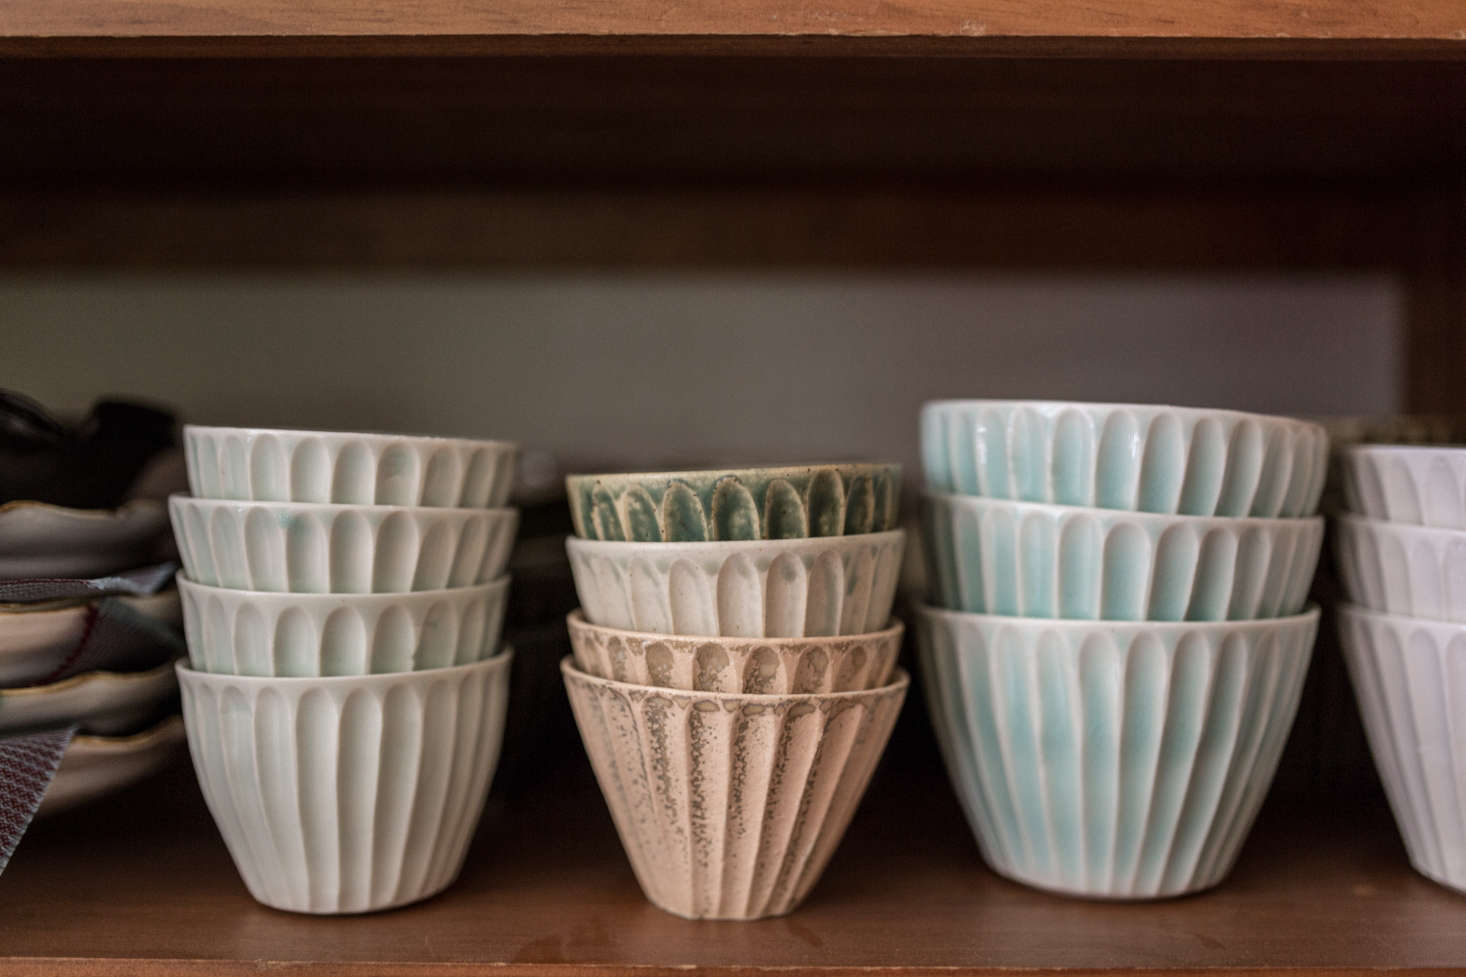 Fourteenth-generation ceramicist Hanako Nakazato divides her time between Japan and Maine (see her home in the tiny town of Union here) and brings the sensibilities of both locales to her work. Shown above is a selection of her ridged bowls on display in her own home. Photograph by Erin Little.